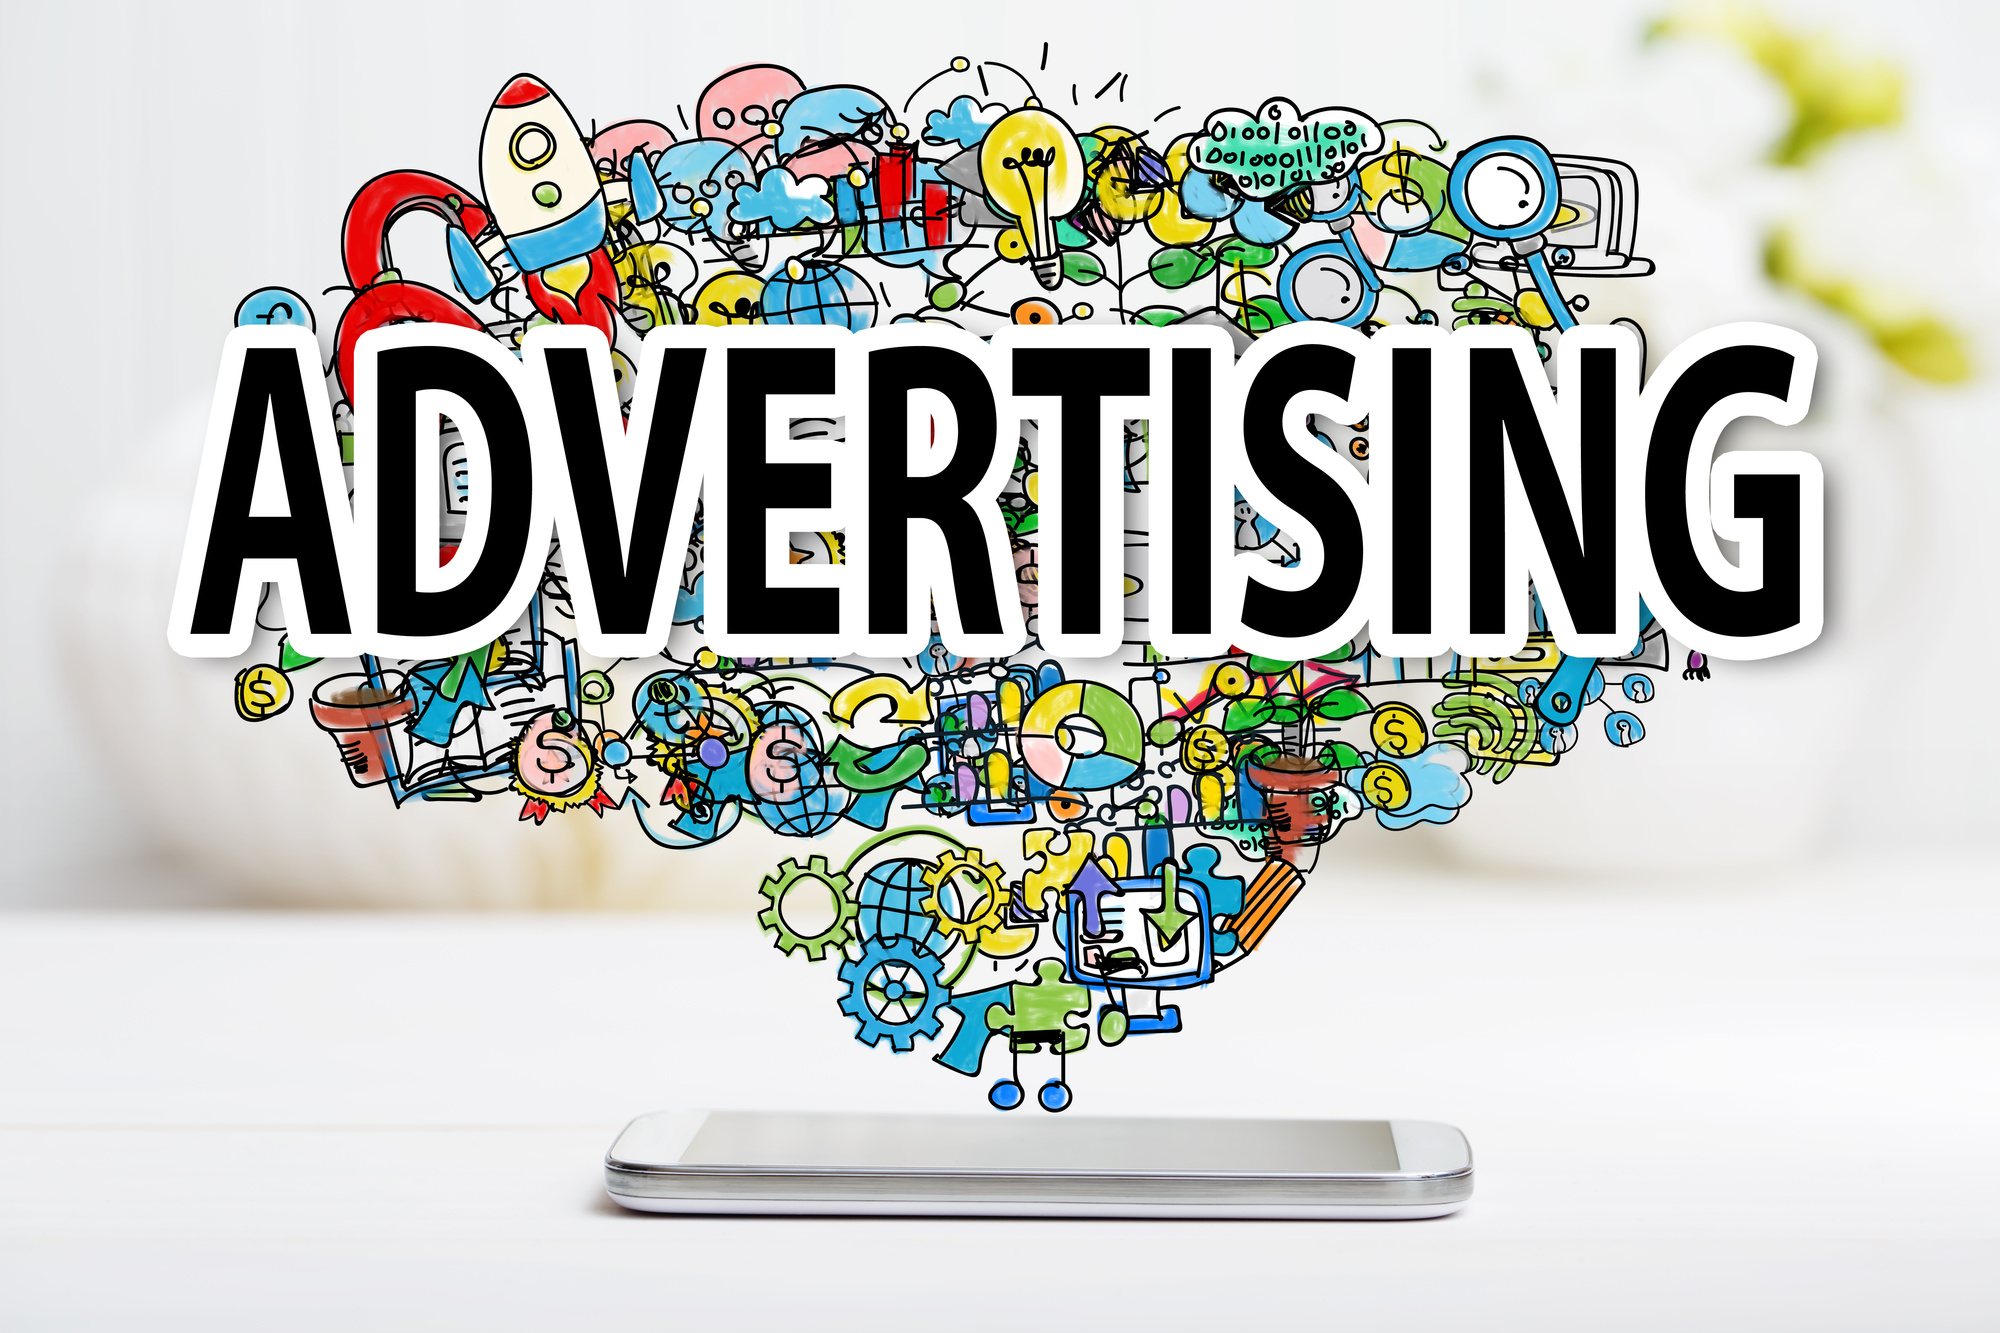 Blockchain could Change Online Advertising